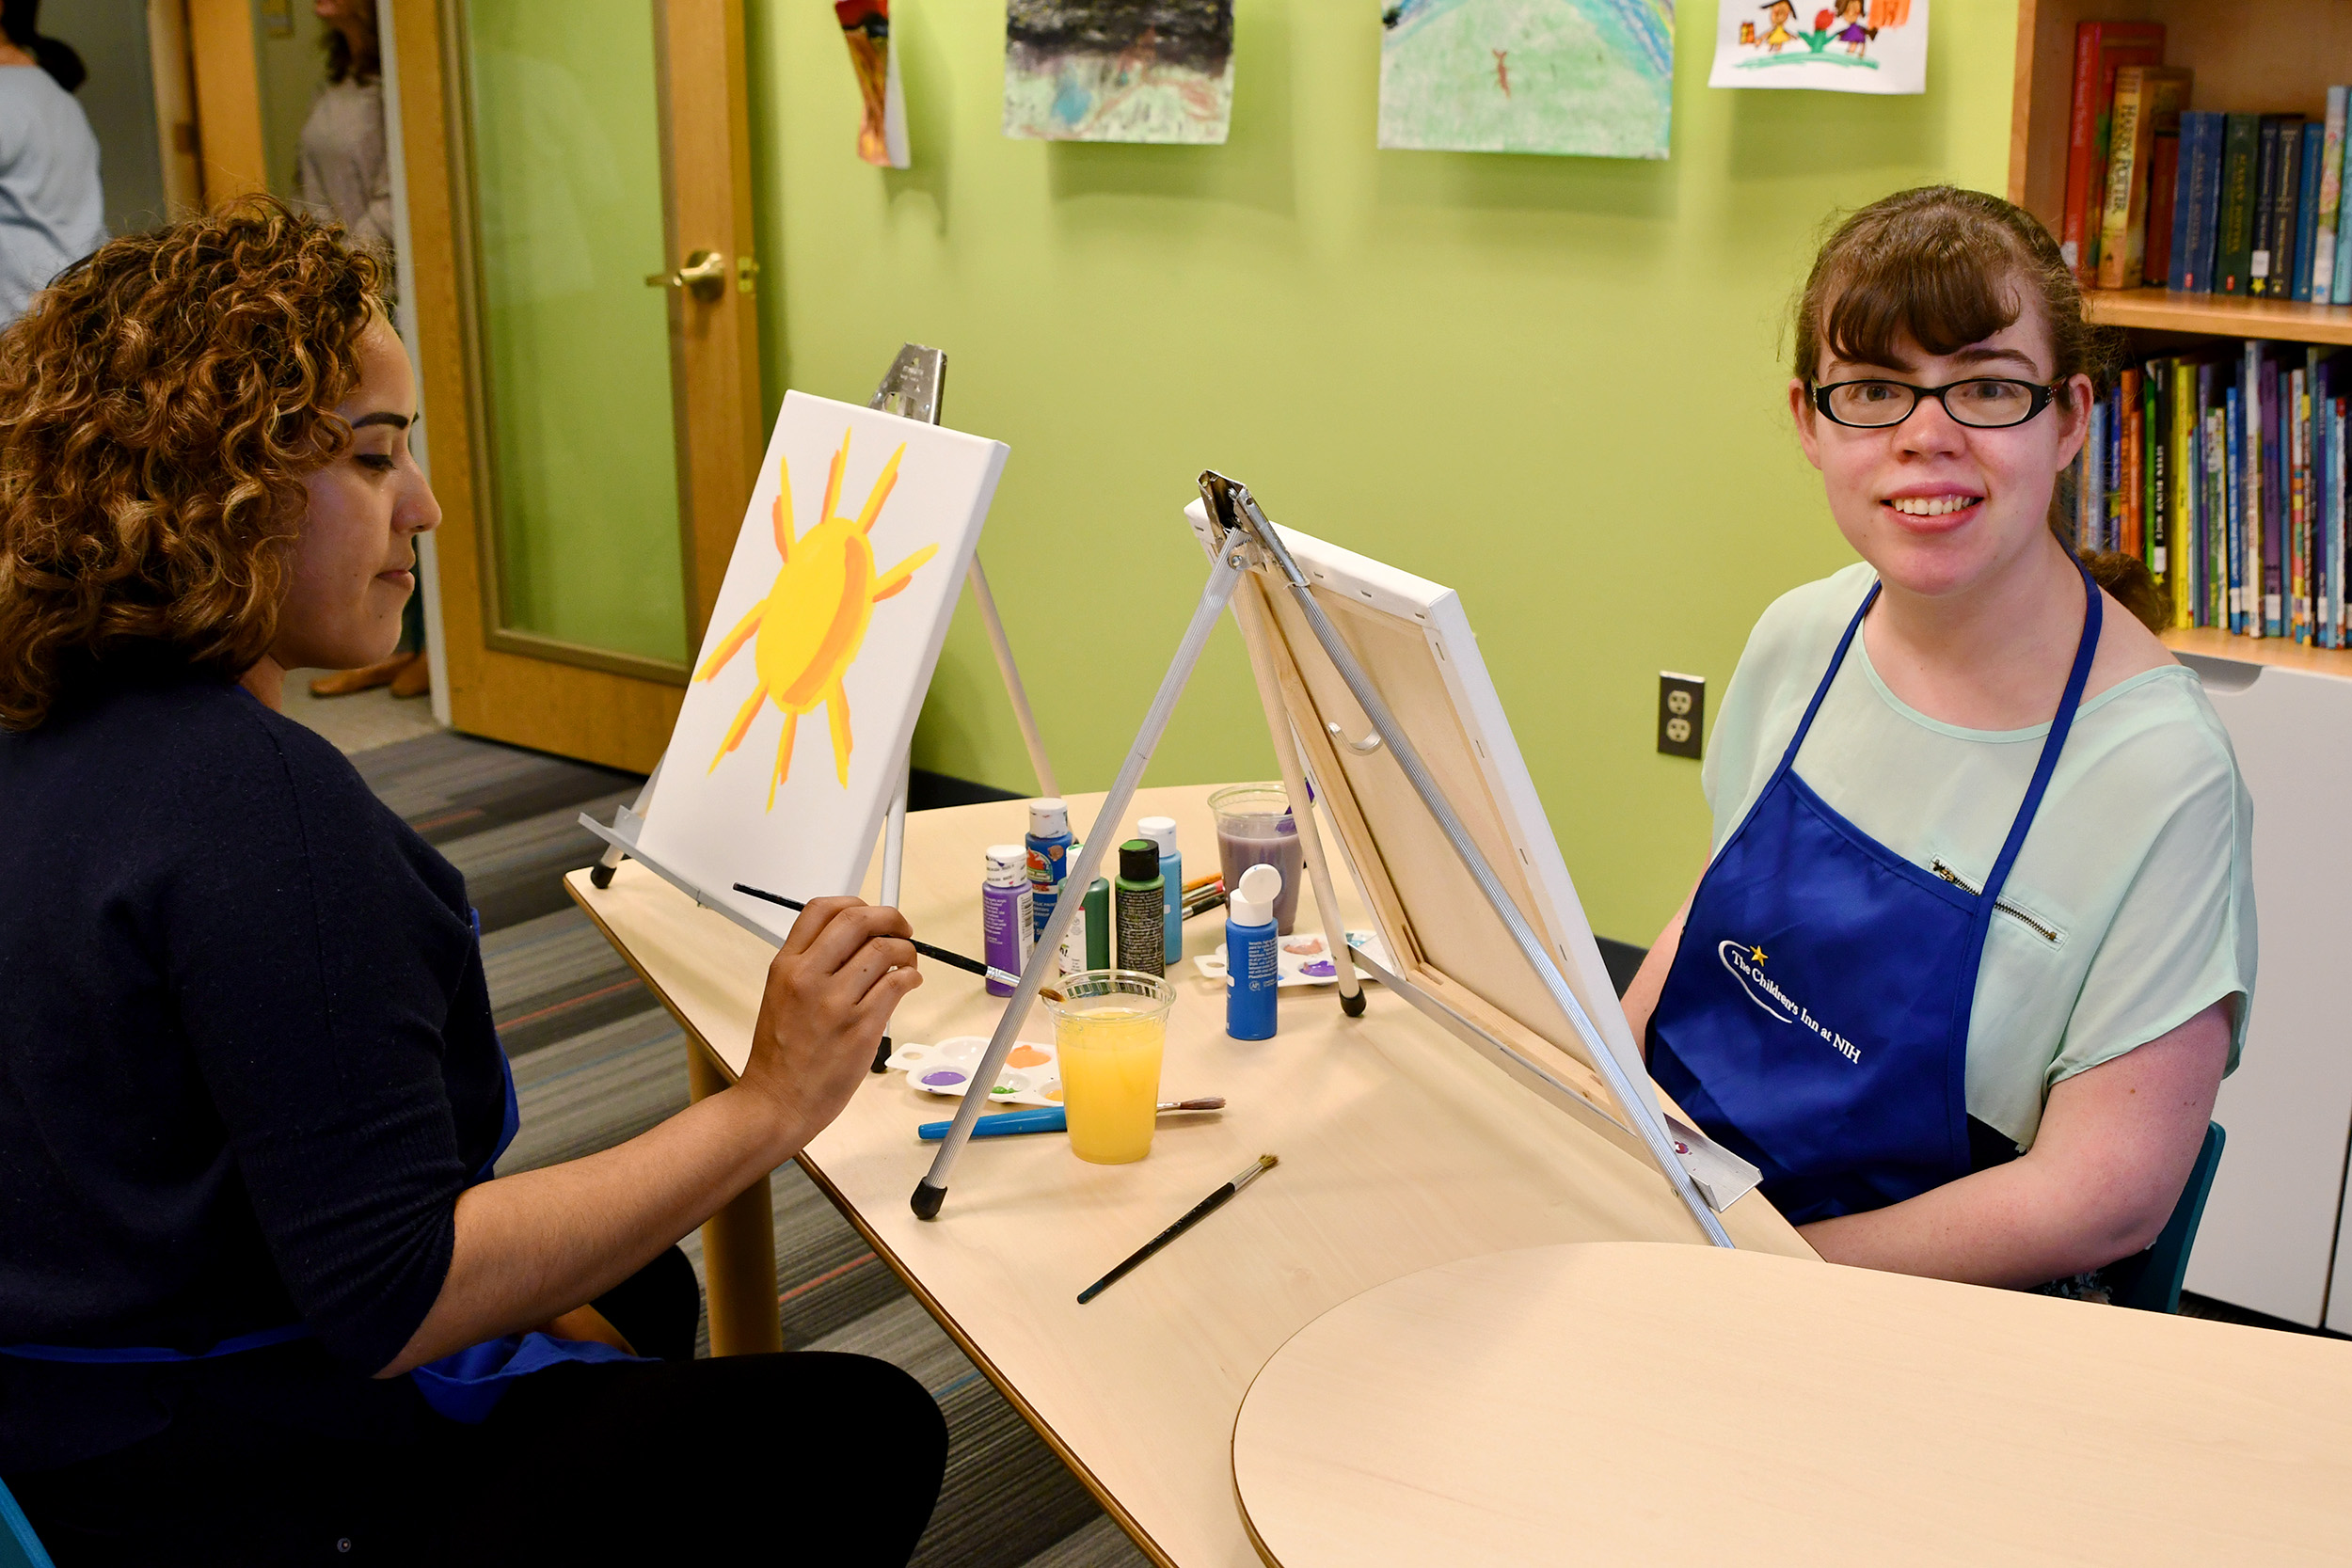 Tina paints with Lidia, an Inn staff member